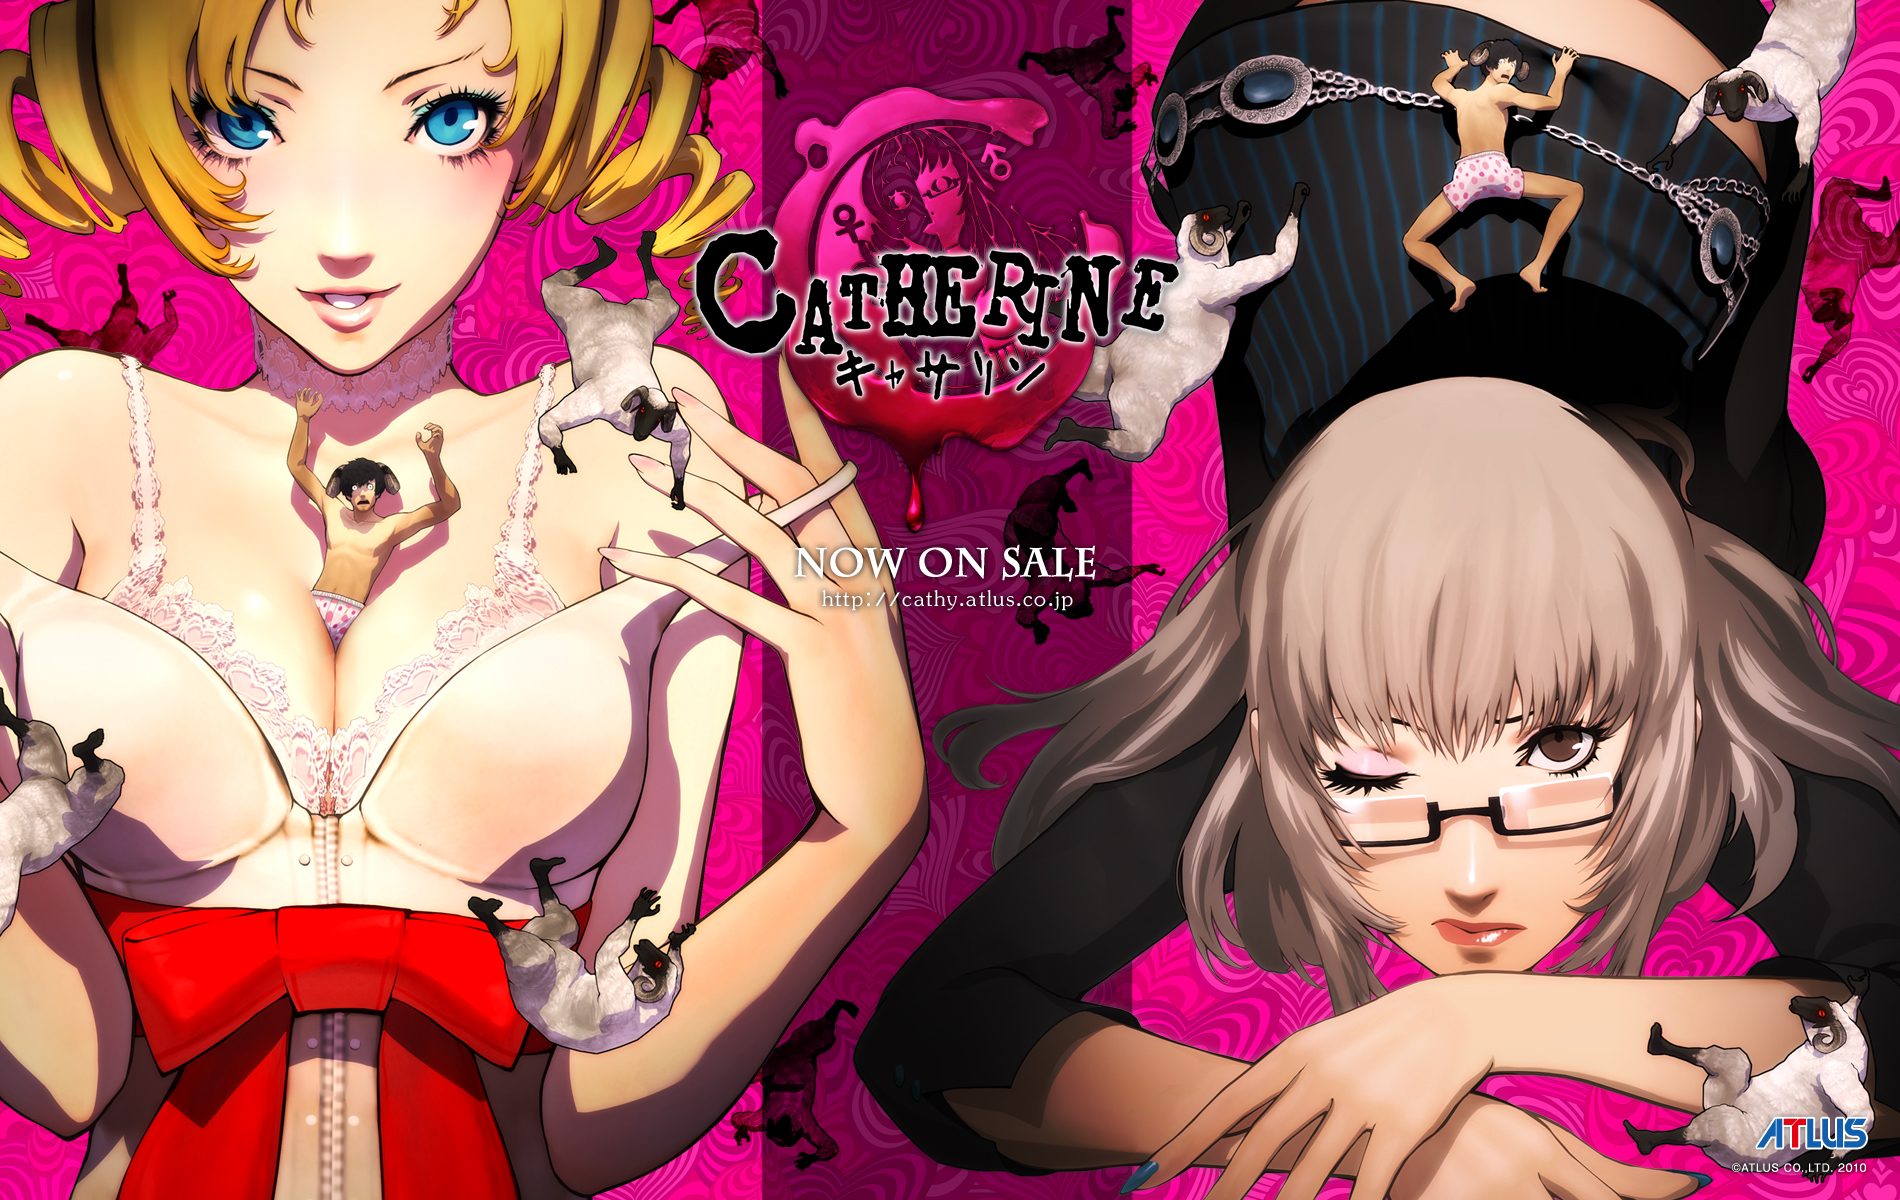 Two Catherine for the price of one Katherine (sexy wallpaper)